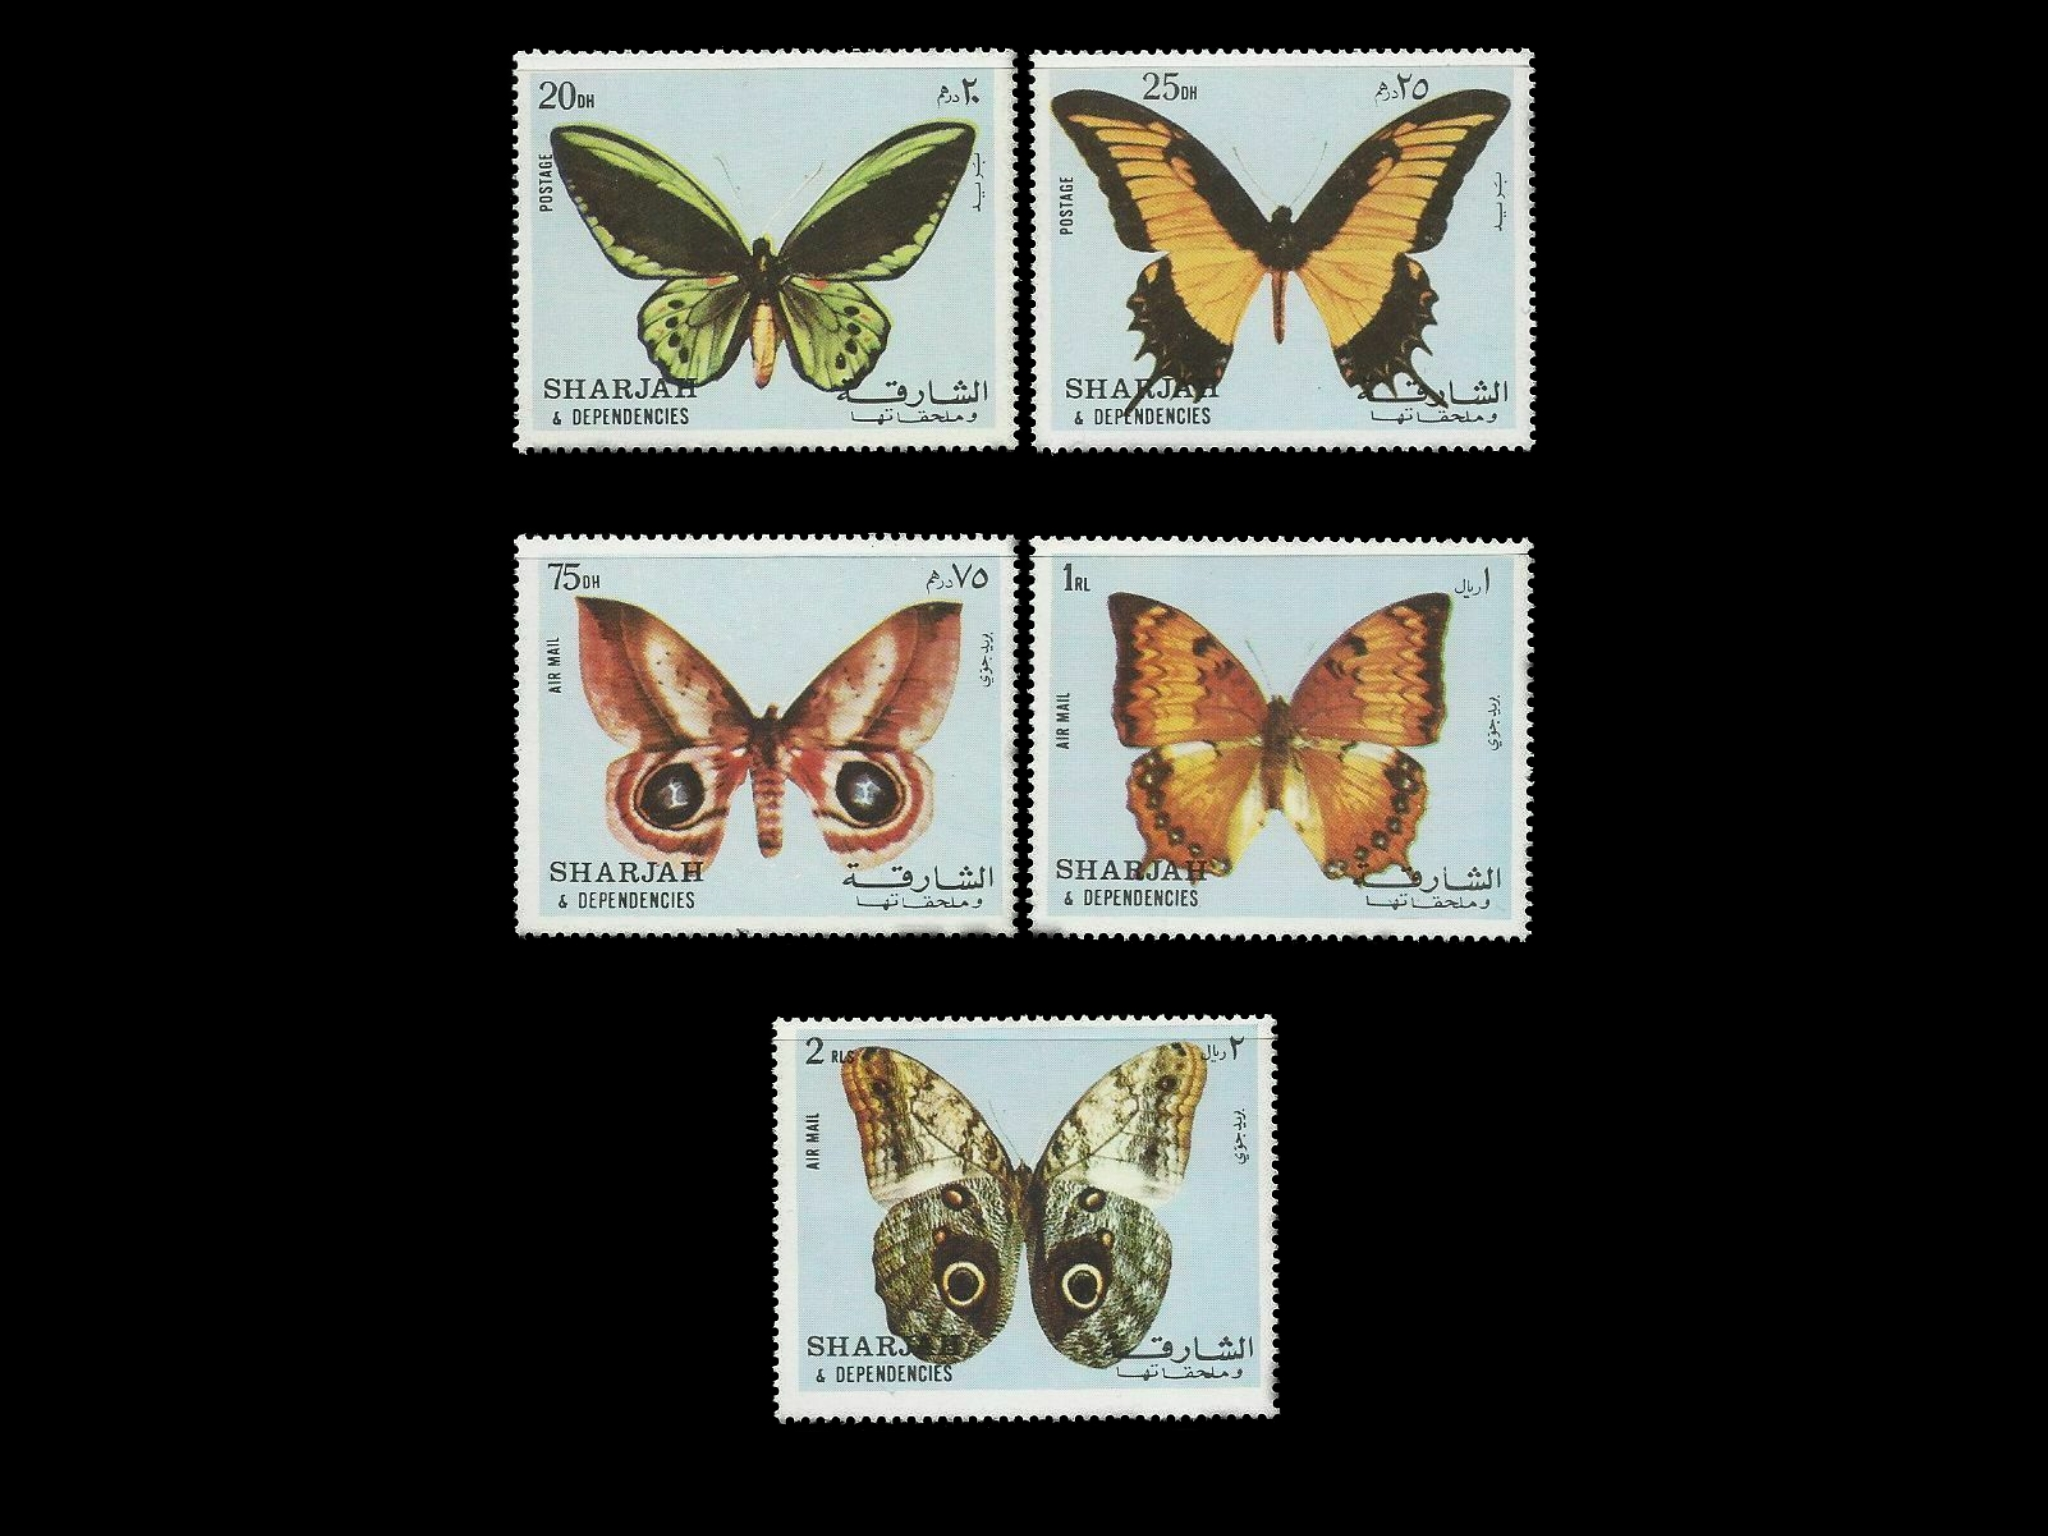 Pitcairn Islands 2005 S Sheet Stamps Odd Shape Butterflies